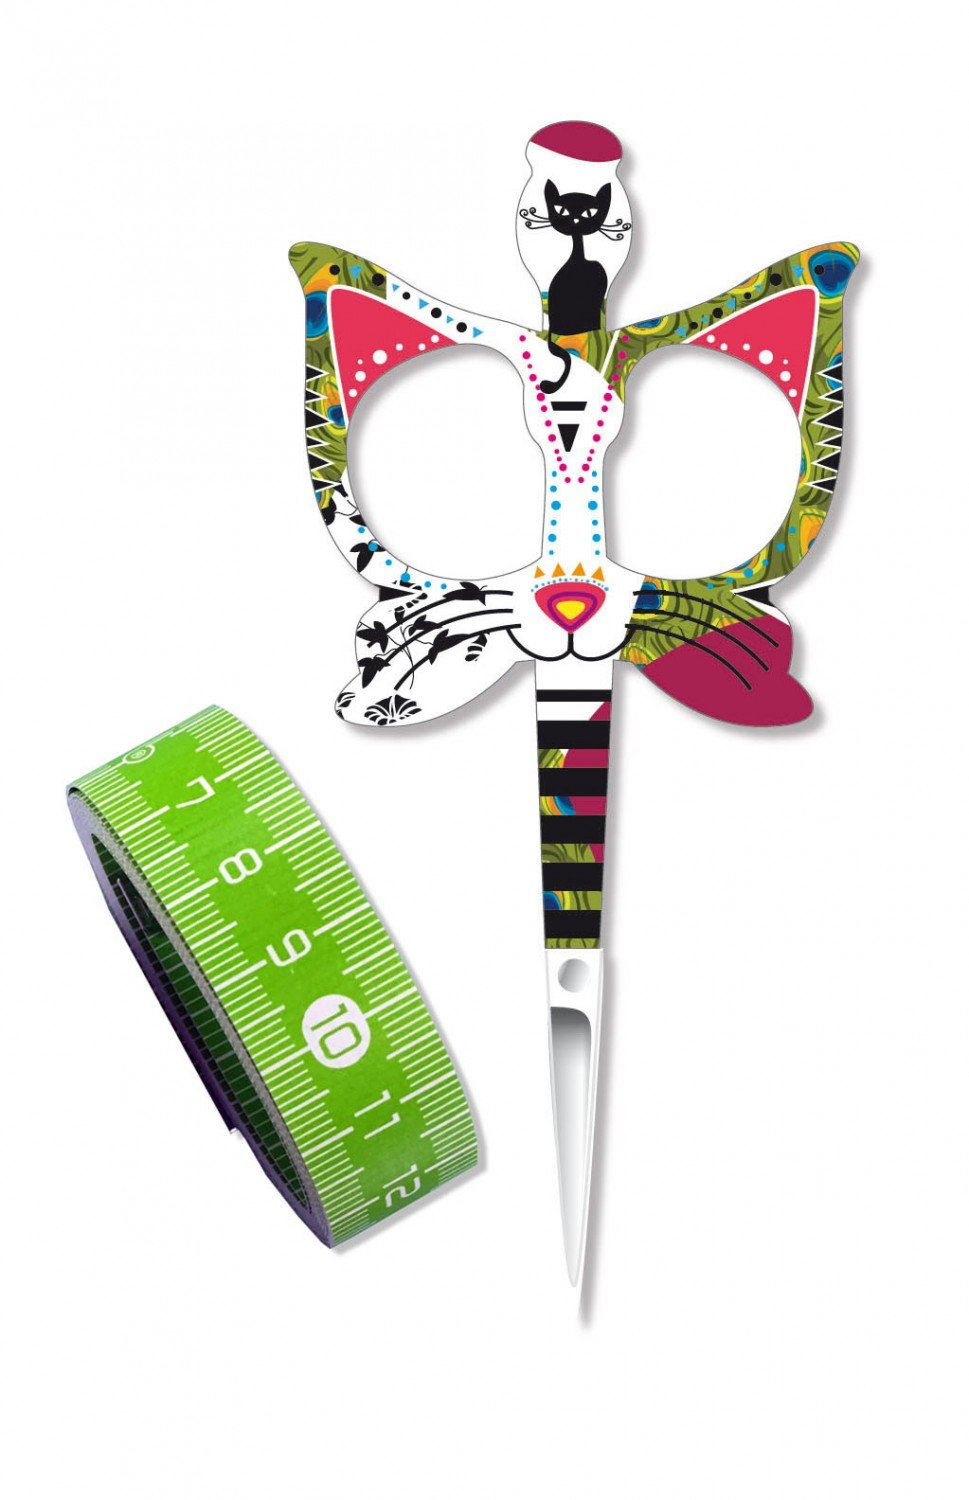 Green Cat Scissor/Tape Measure - BH98574  - MAY BE RESTOCKED UPON REQUEST